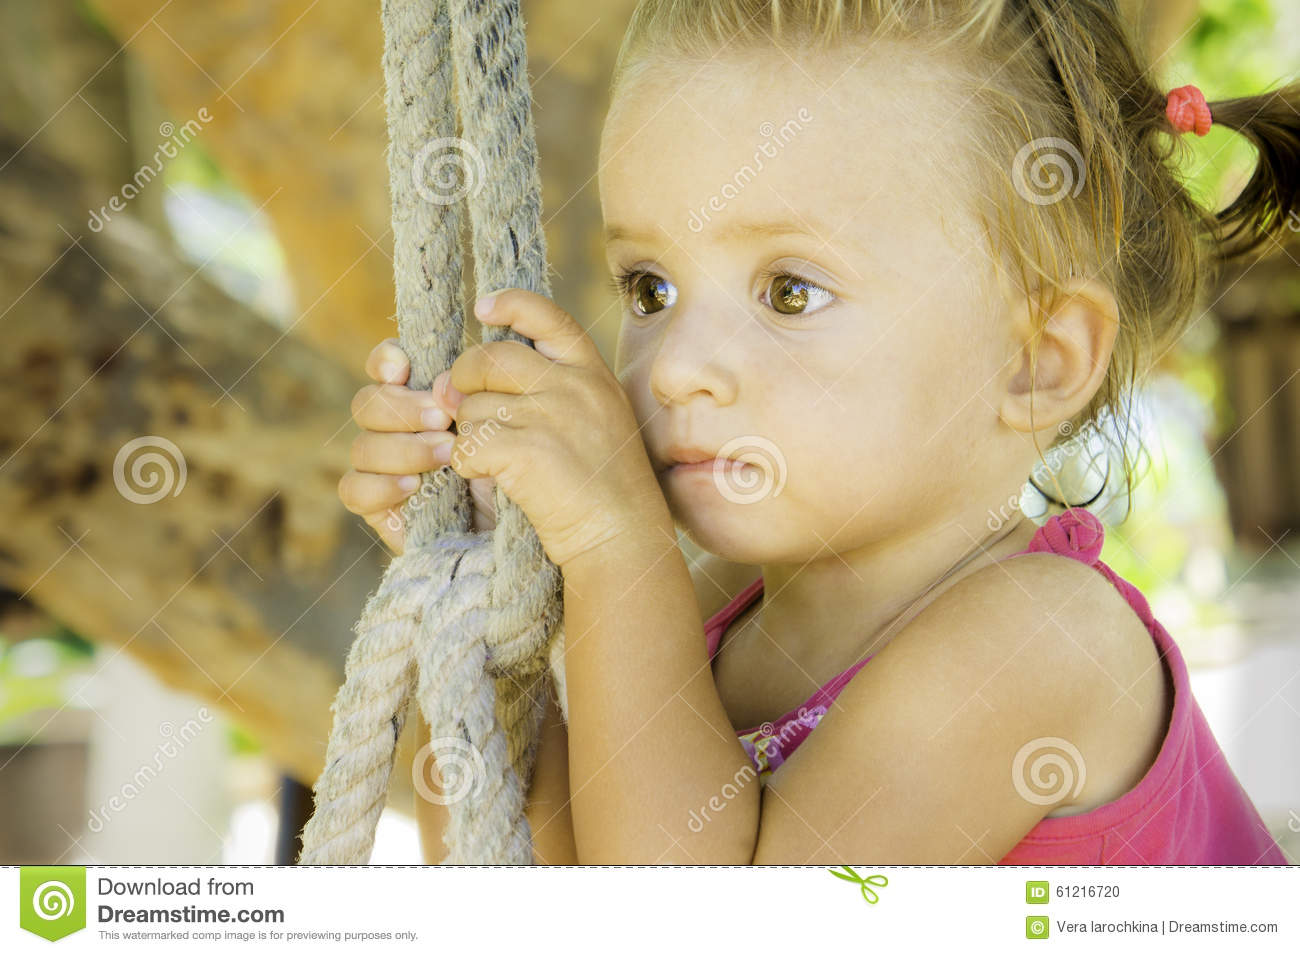 Baby sitting on swing and looking off into the distance.she has very beautiful eyes